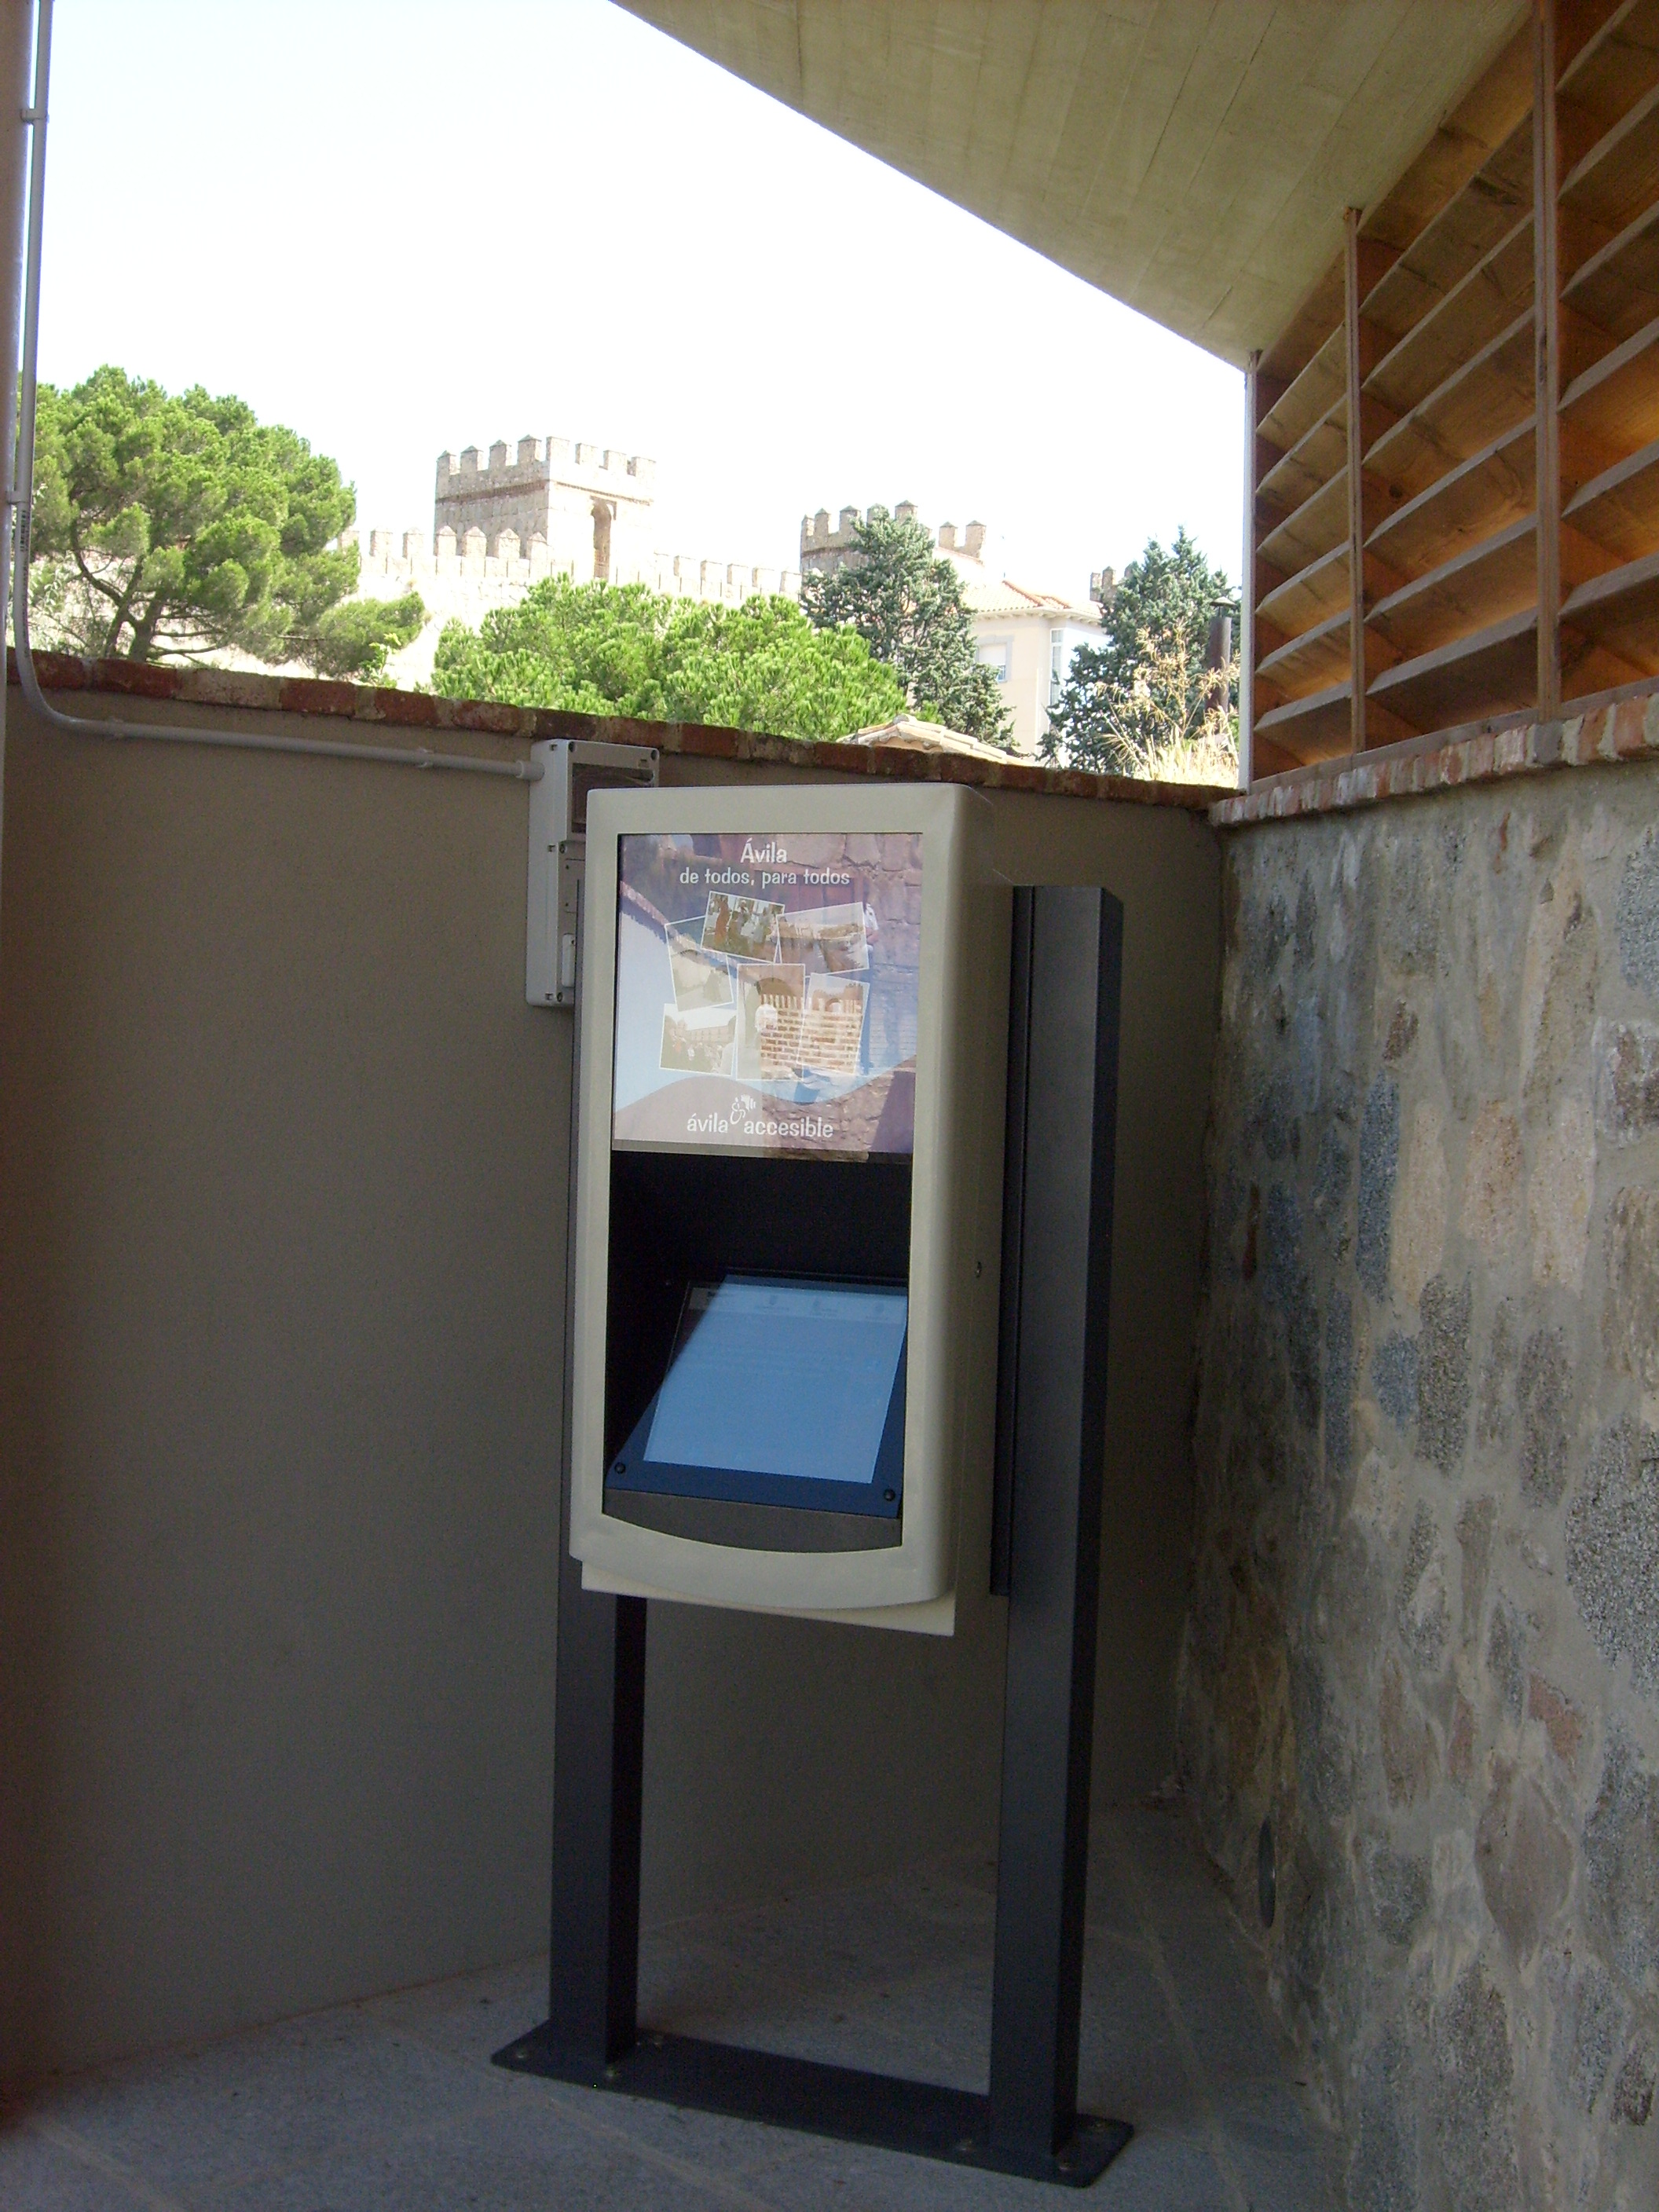 The accessible information point, with information in multiple formats – visual, audible and sign language